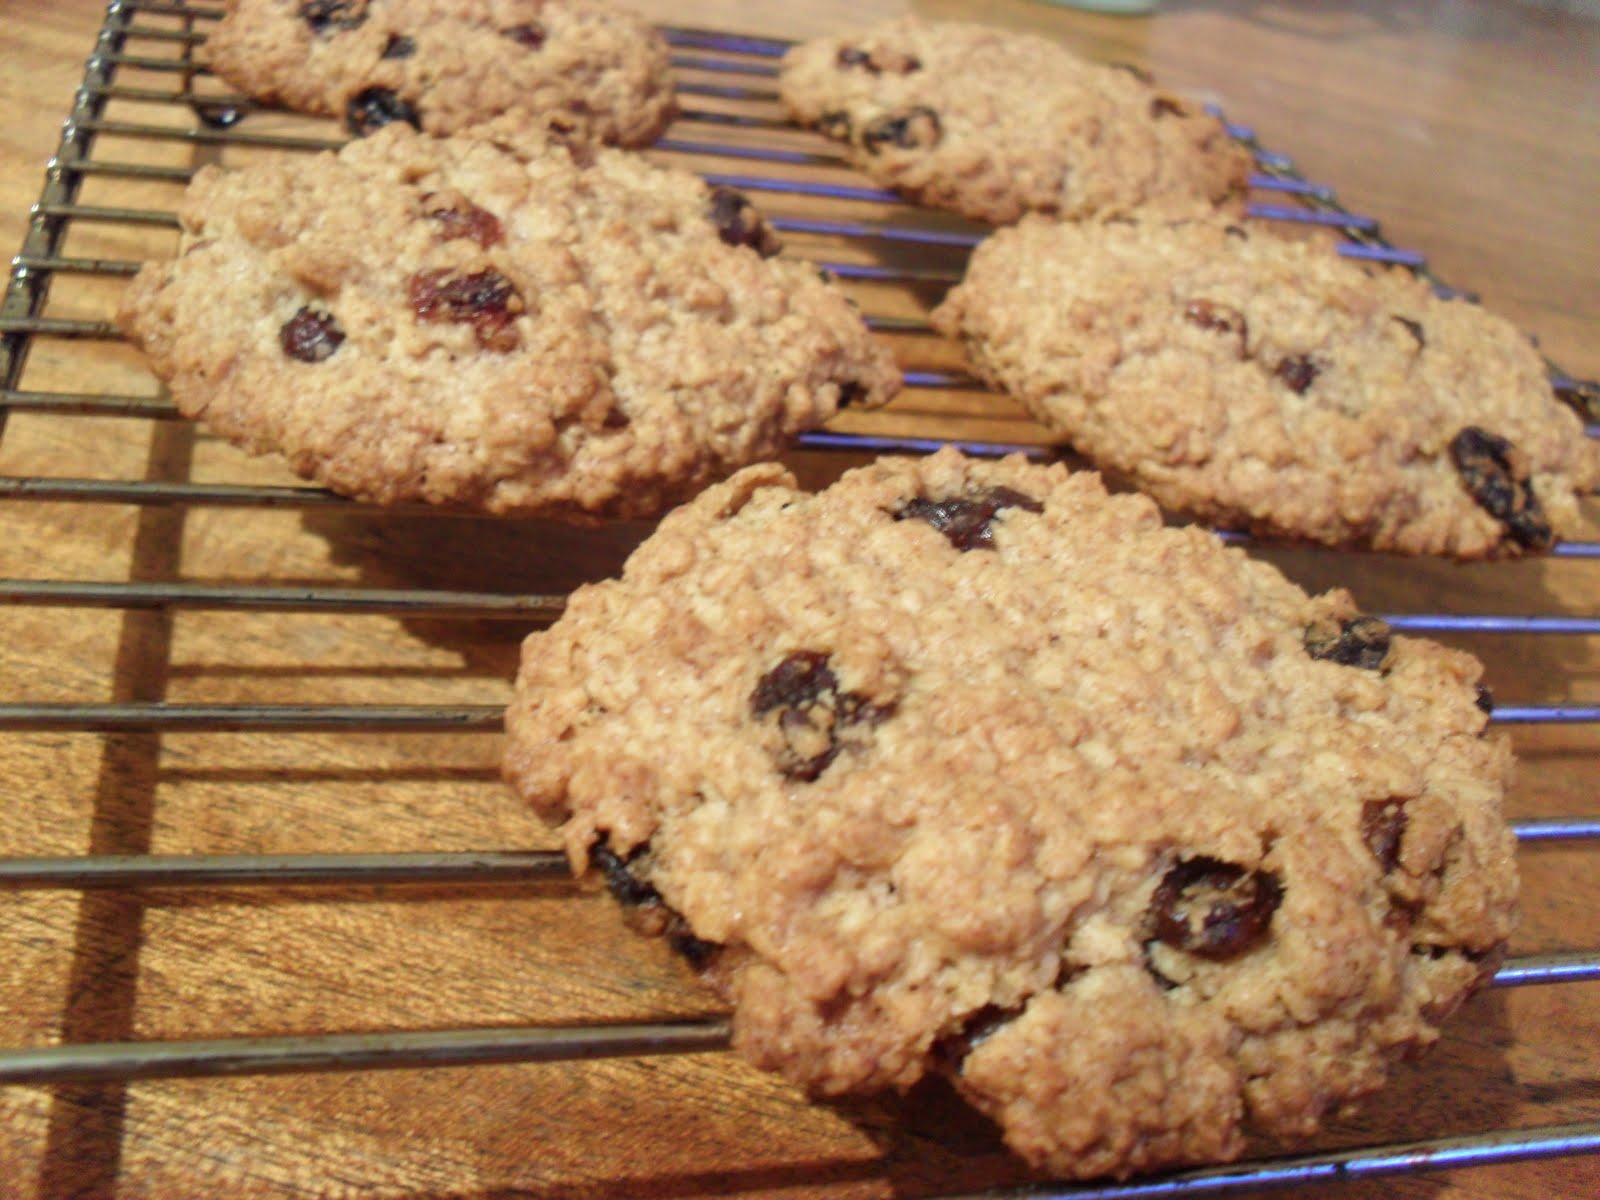 Big Fat Chewy Oatmeal Raisin Cookies | Knitting on Trains